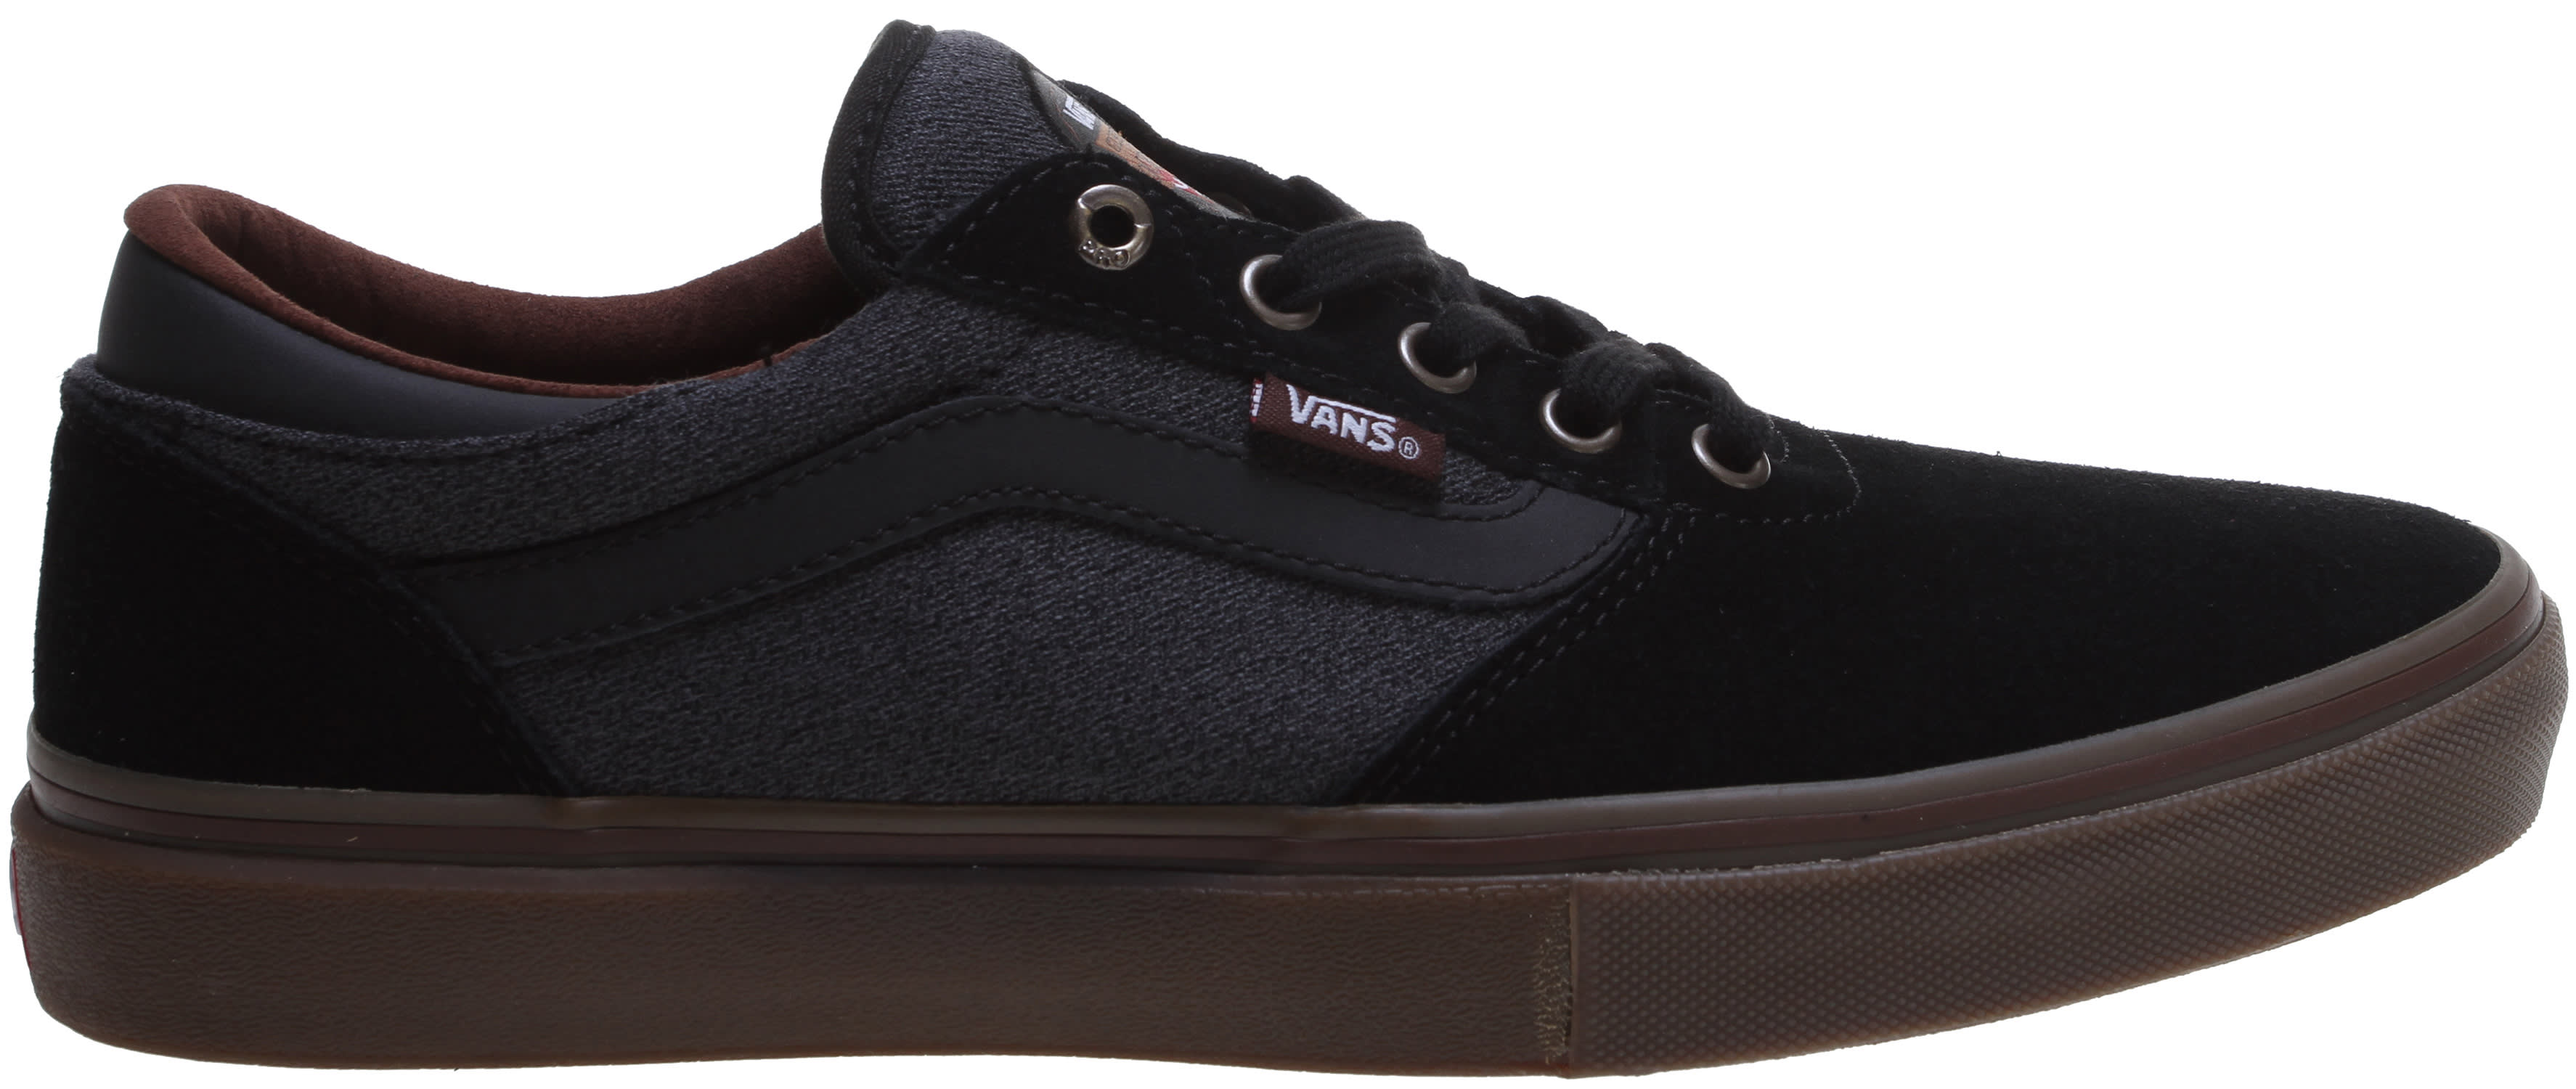 Vans Gilbert Crockett Pro Skate Shoes - thumbnail 1 60d2338d4b